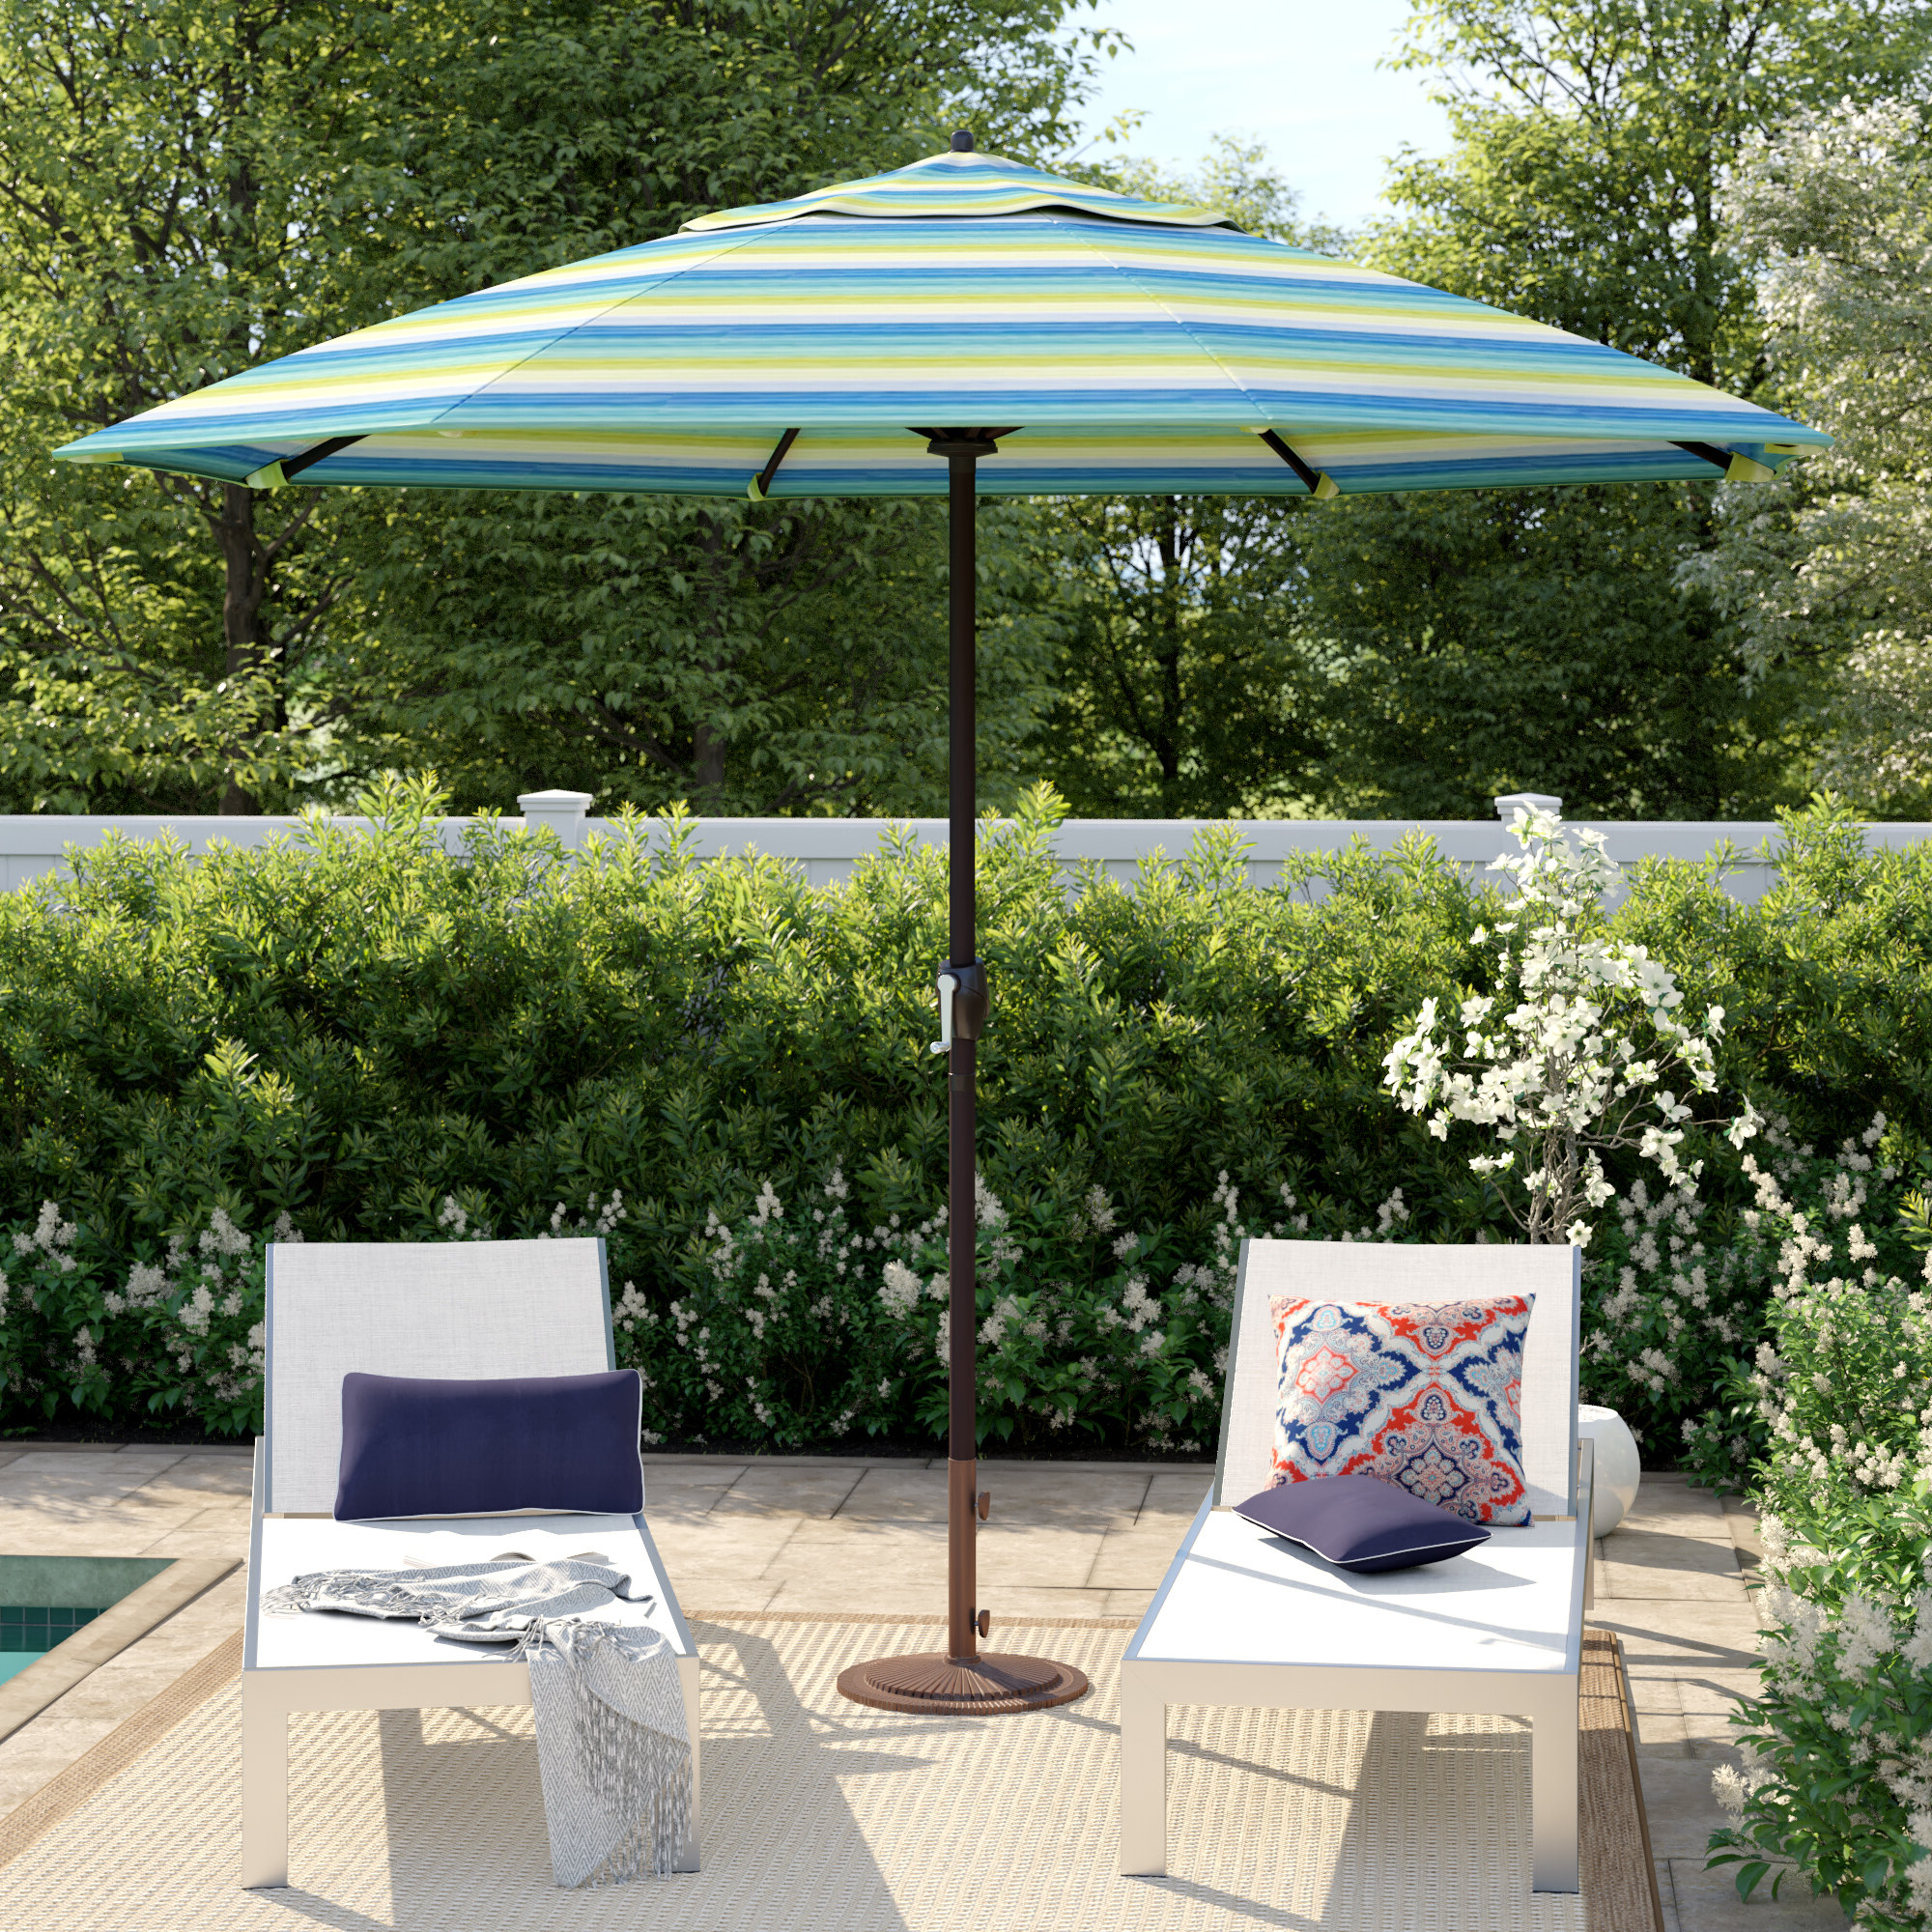 Most Popular Cardine 9' Market Sunbrella Umbrella With Mucci Madilyn Market Sunbrella Umbrellas (View 19 of 20)